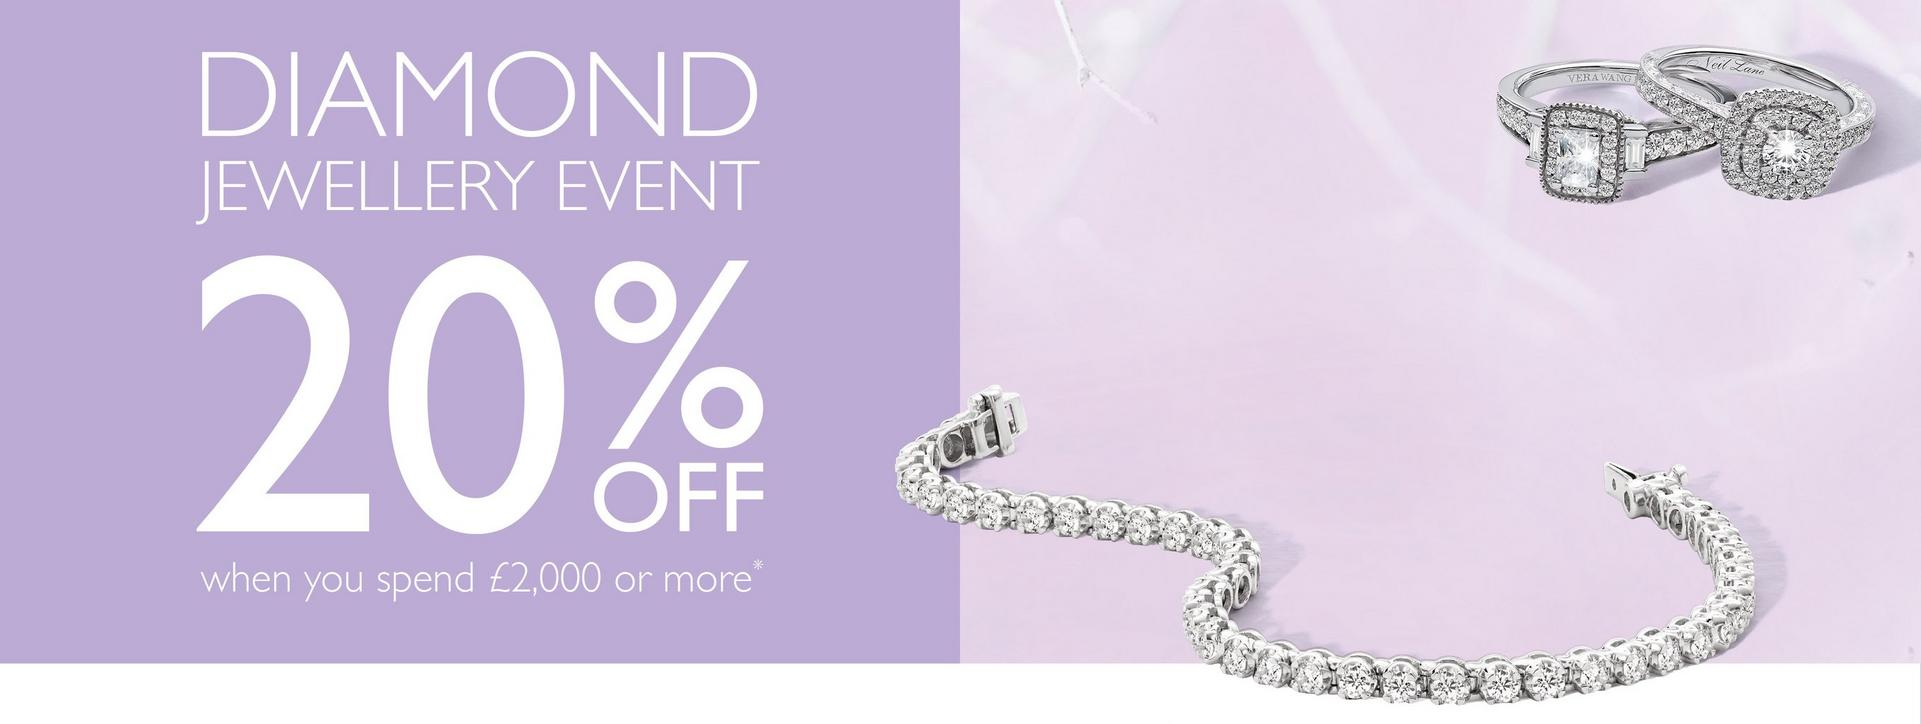 Diamond Jewellery Event - 20% off diamond rings and jewellery when you spend £2,000 or more at Ernest Jones - ends Sunday